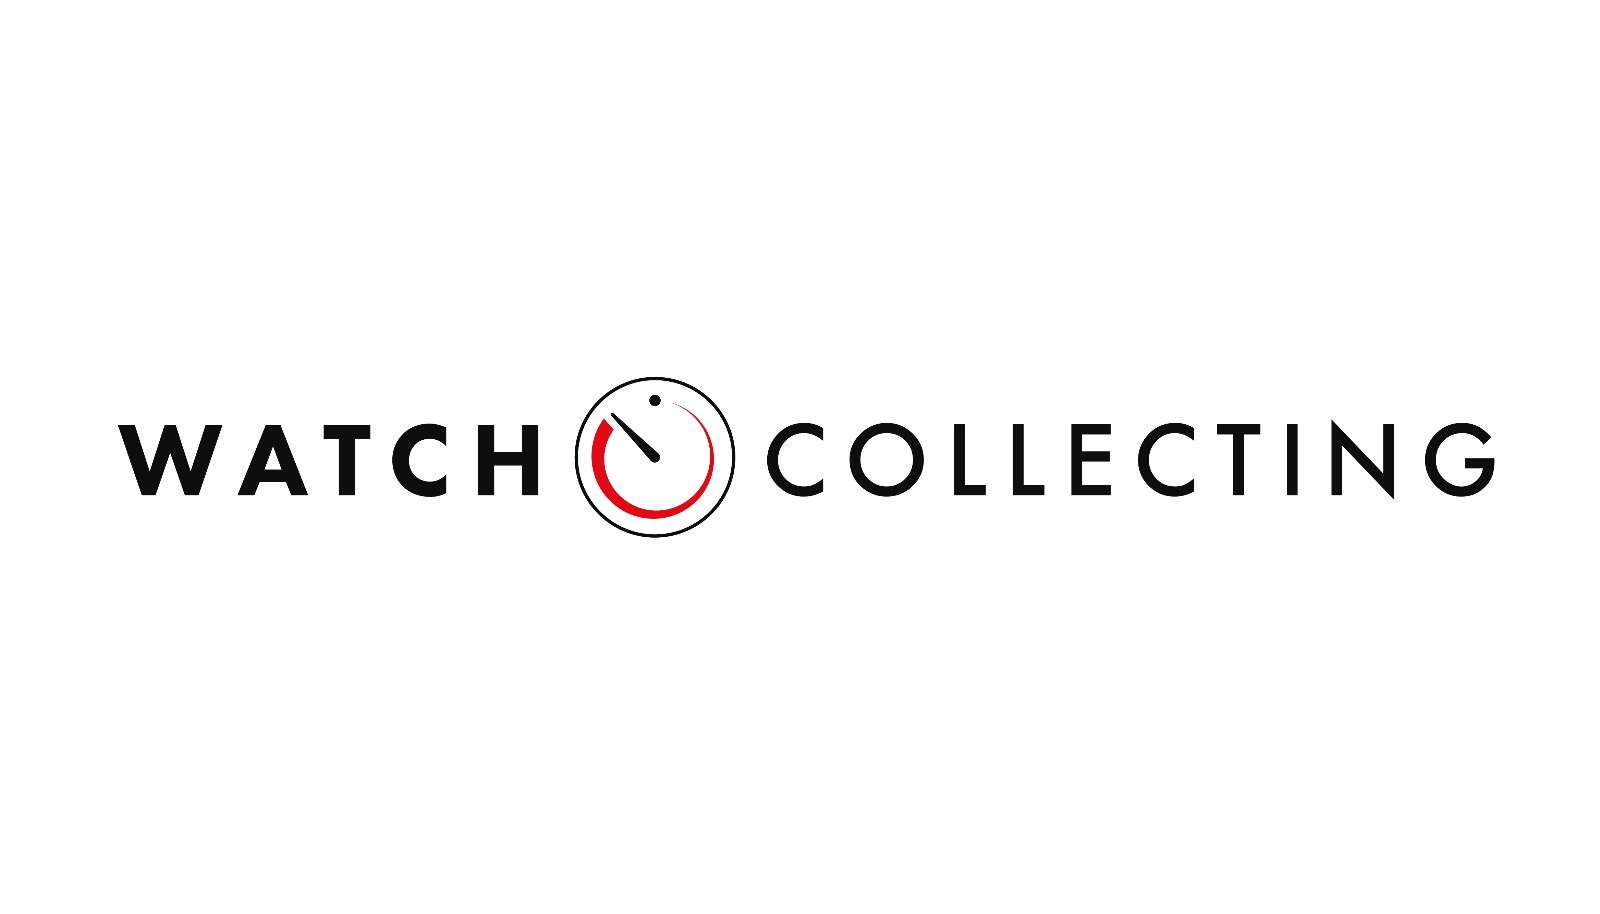 Introducing WatchCollecting.com